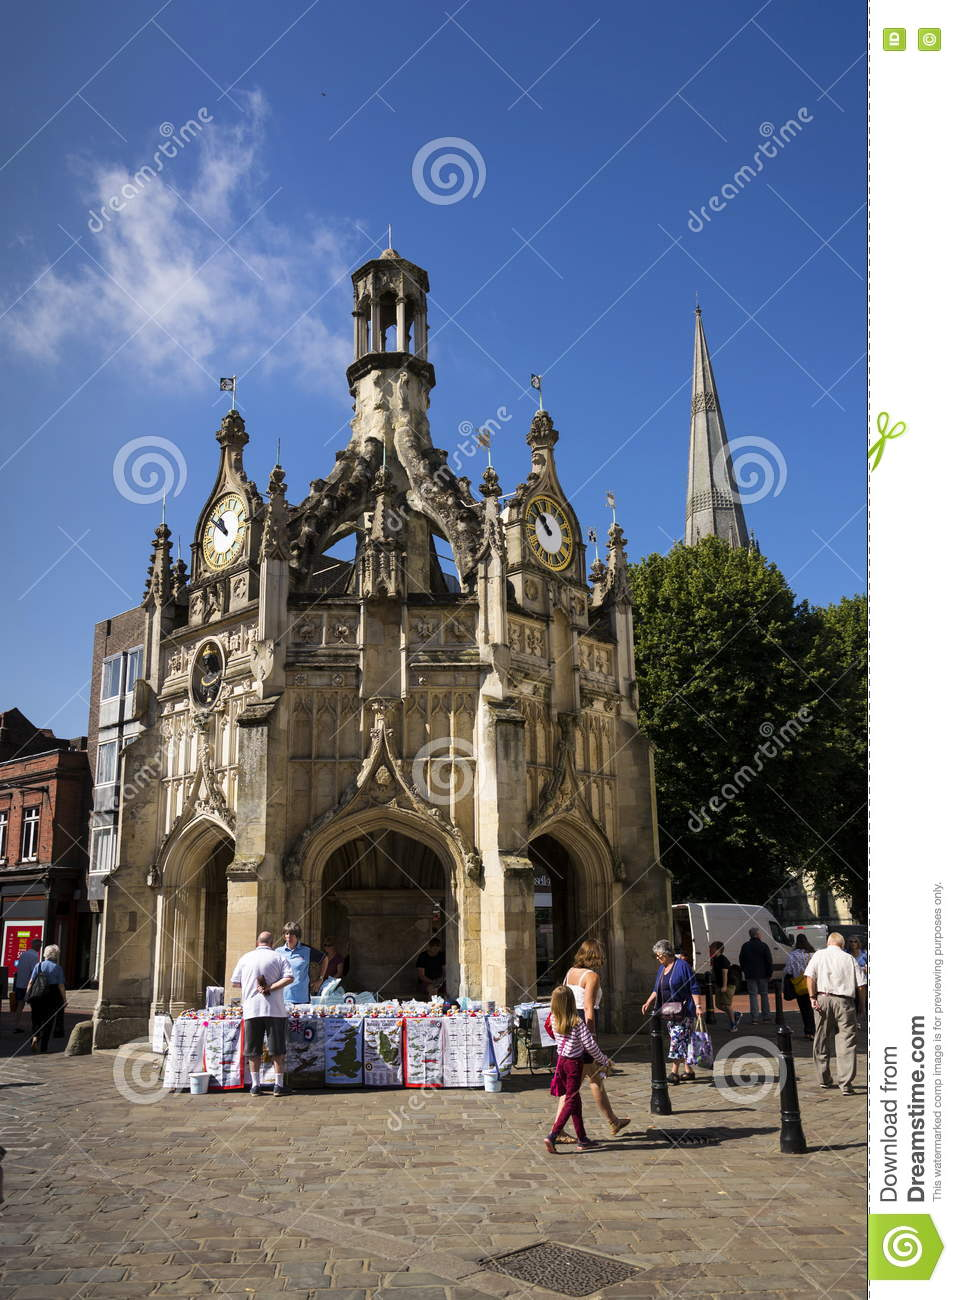 People walk on street in front of the Chichester Cross on August 12, 2016 in Chichester, United Kingdom.